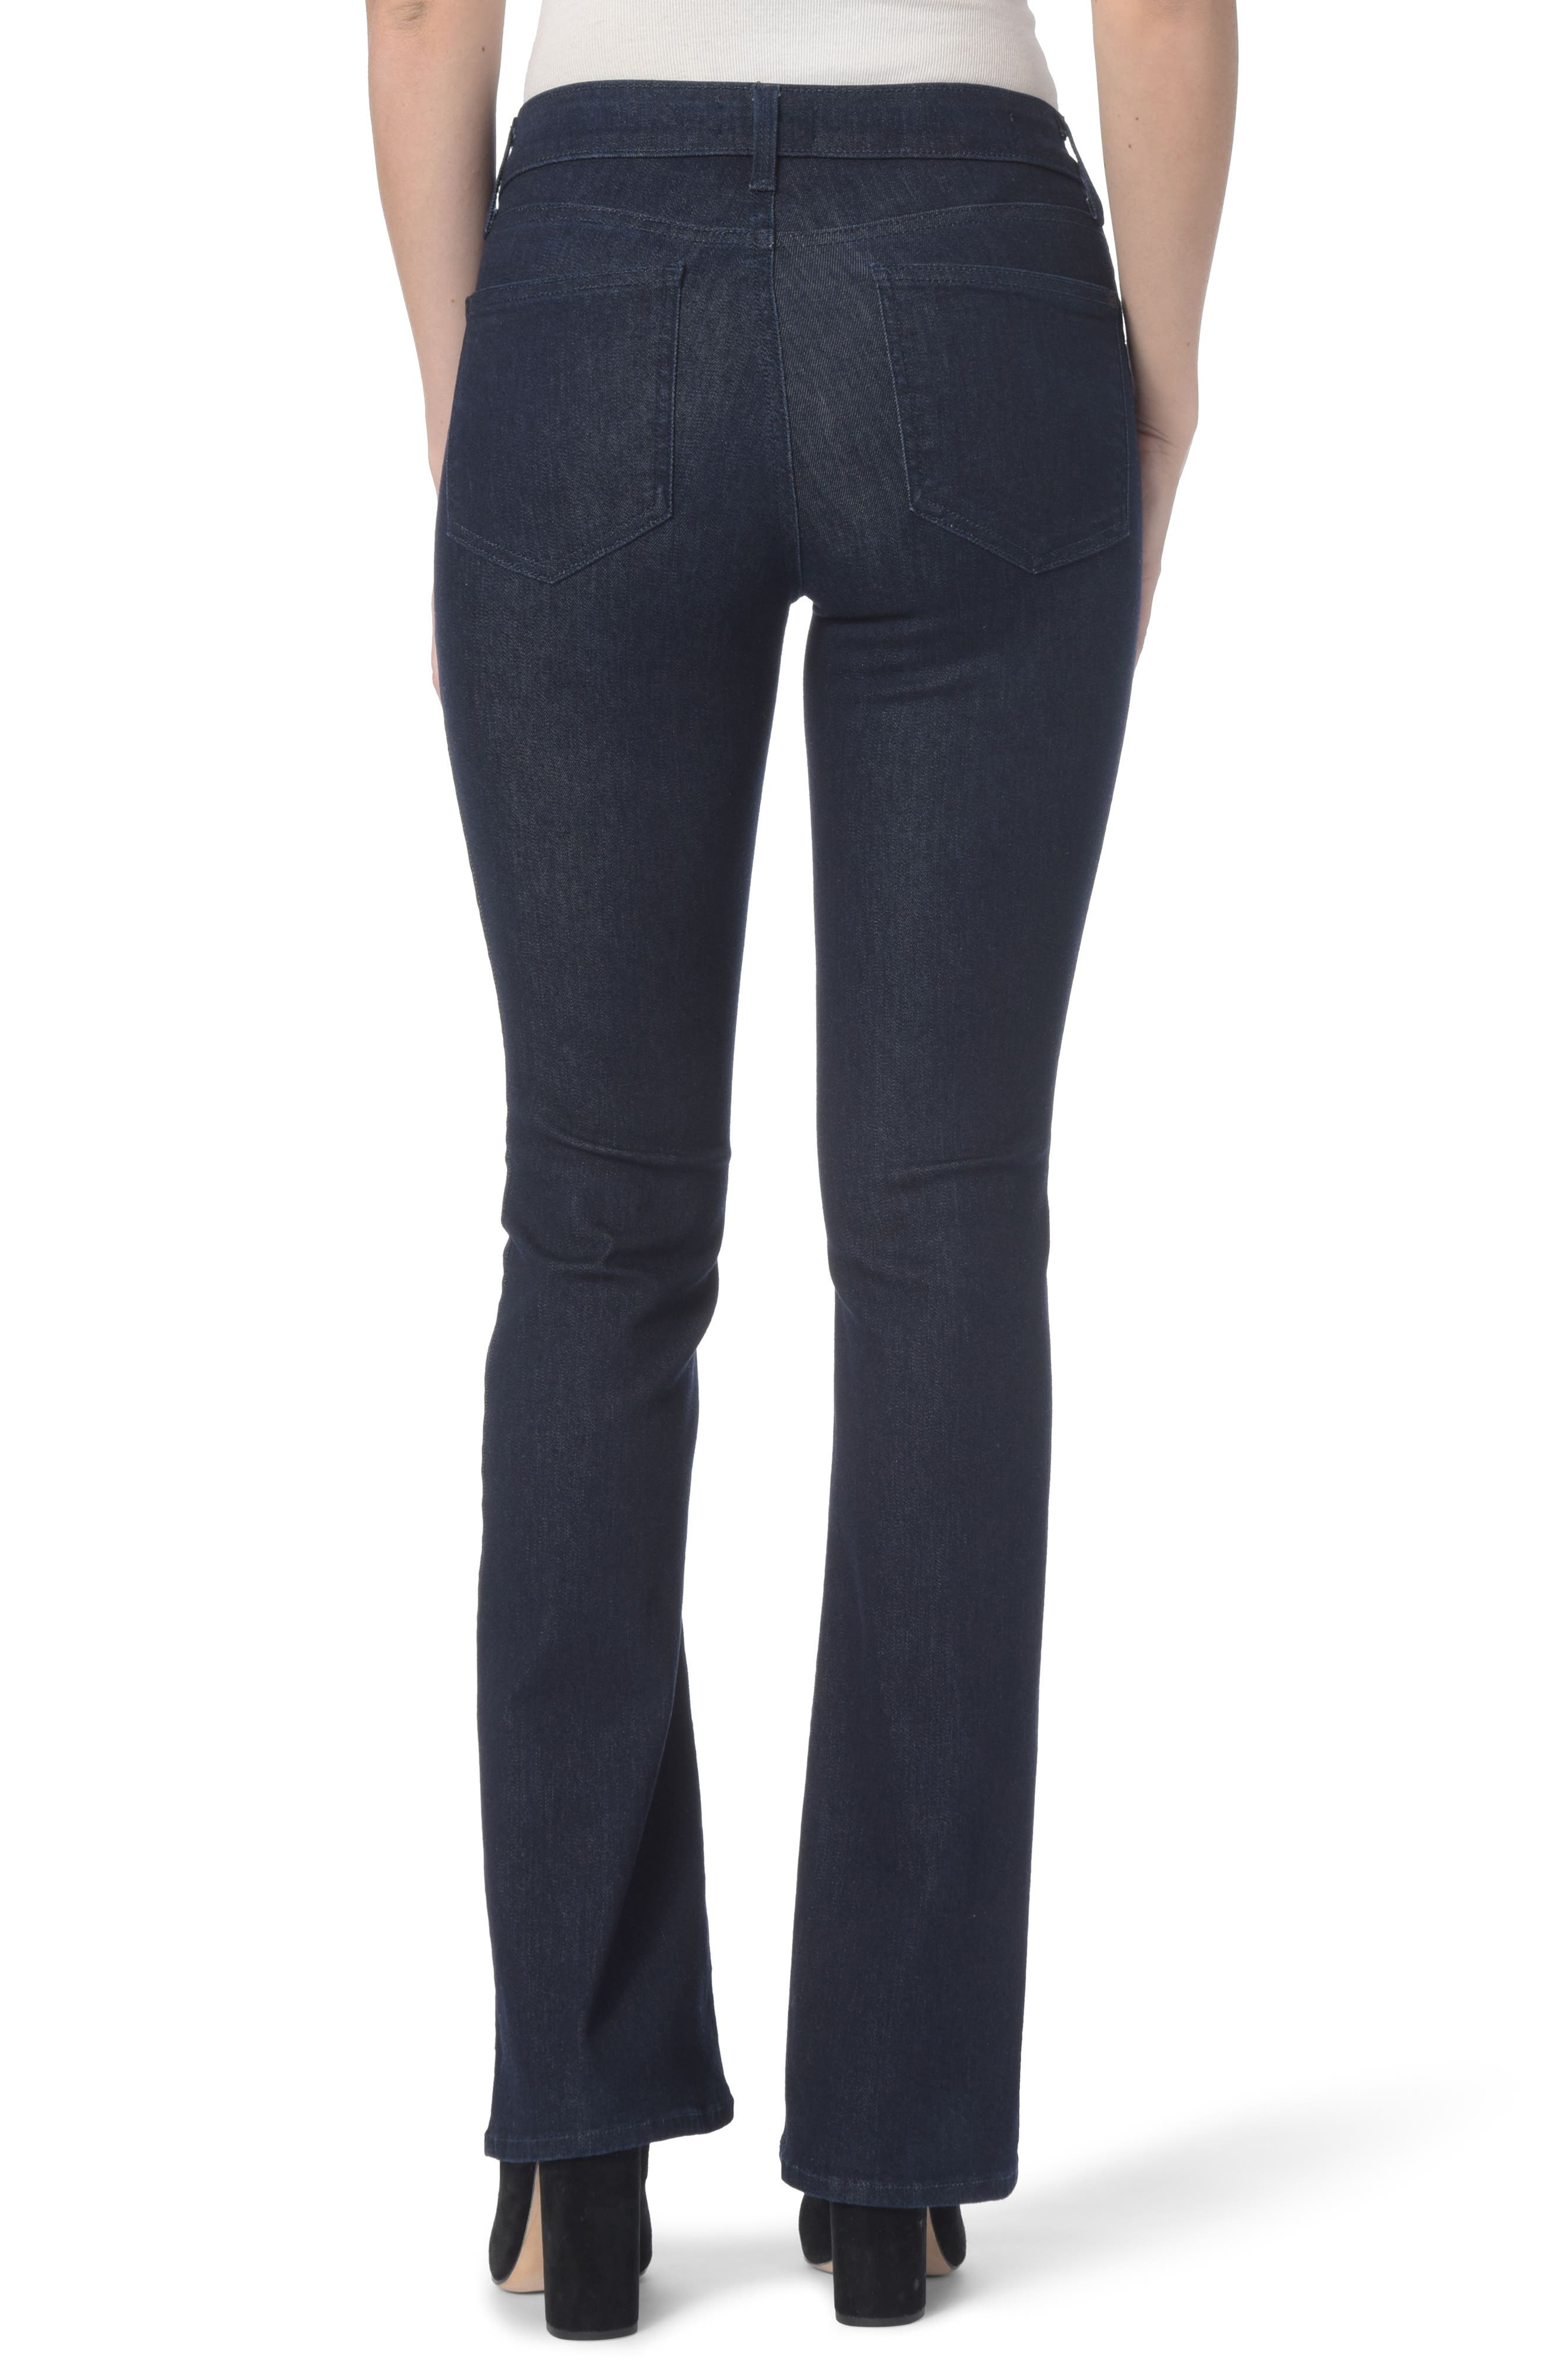 Barbara High Waist Bootcut Jeans,                             Alternate thumbnail 2, color,                             RINSE